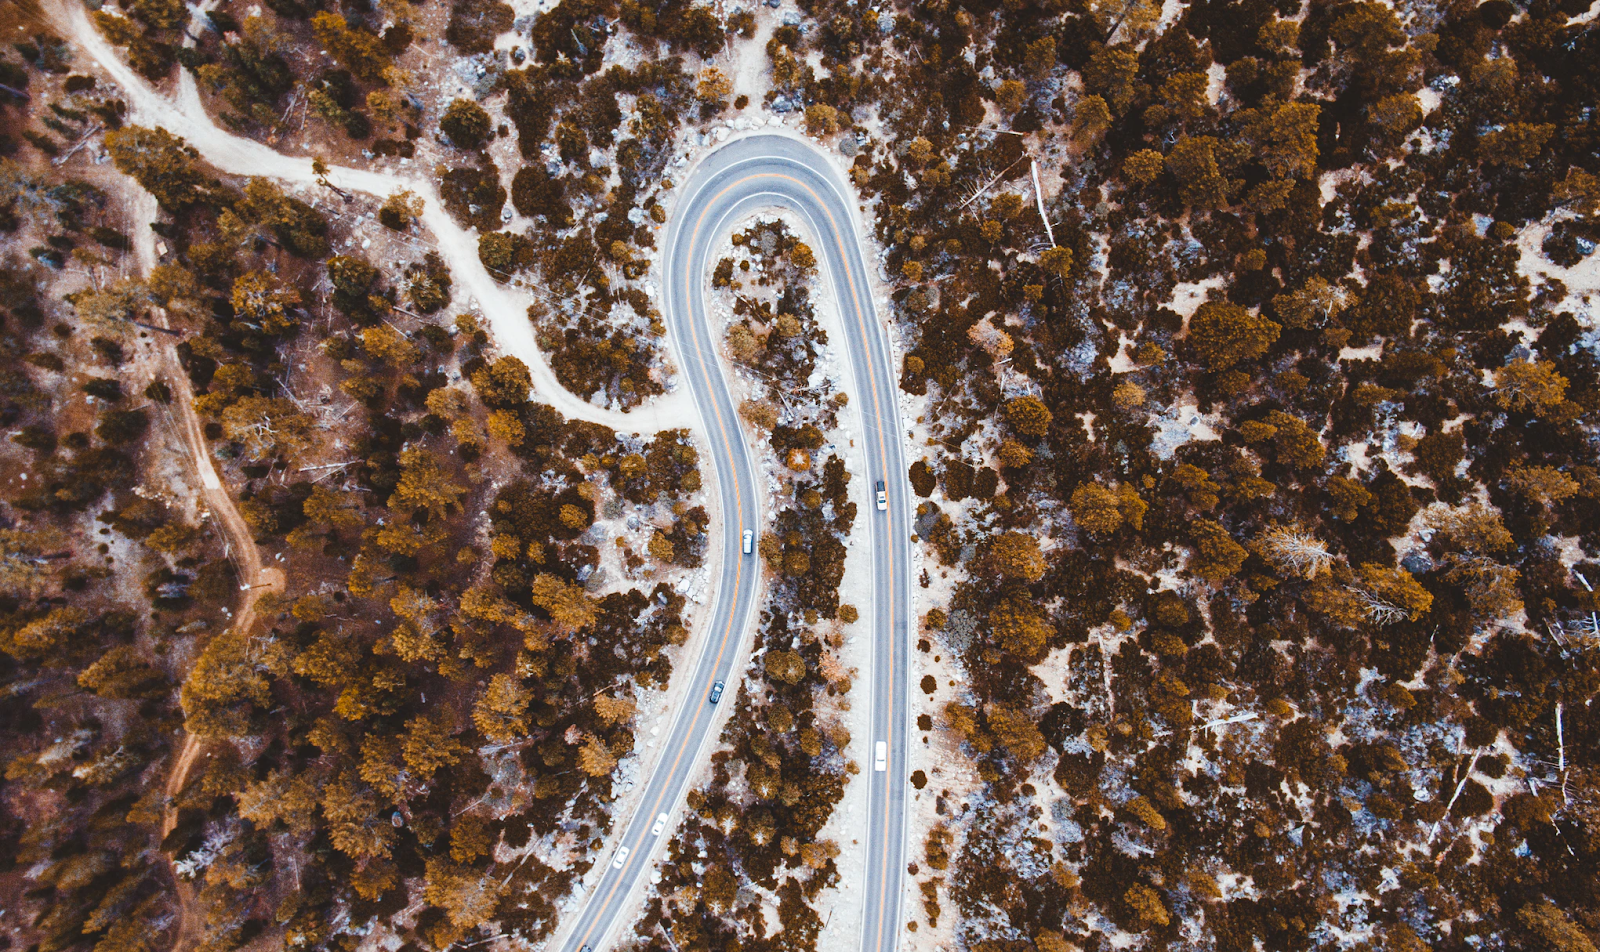 Overhead view of a curved road